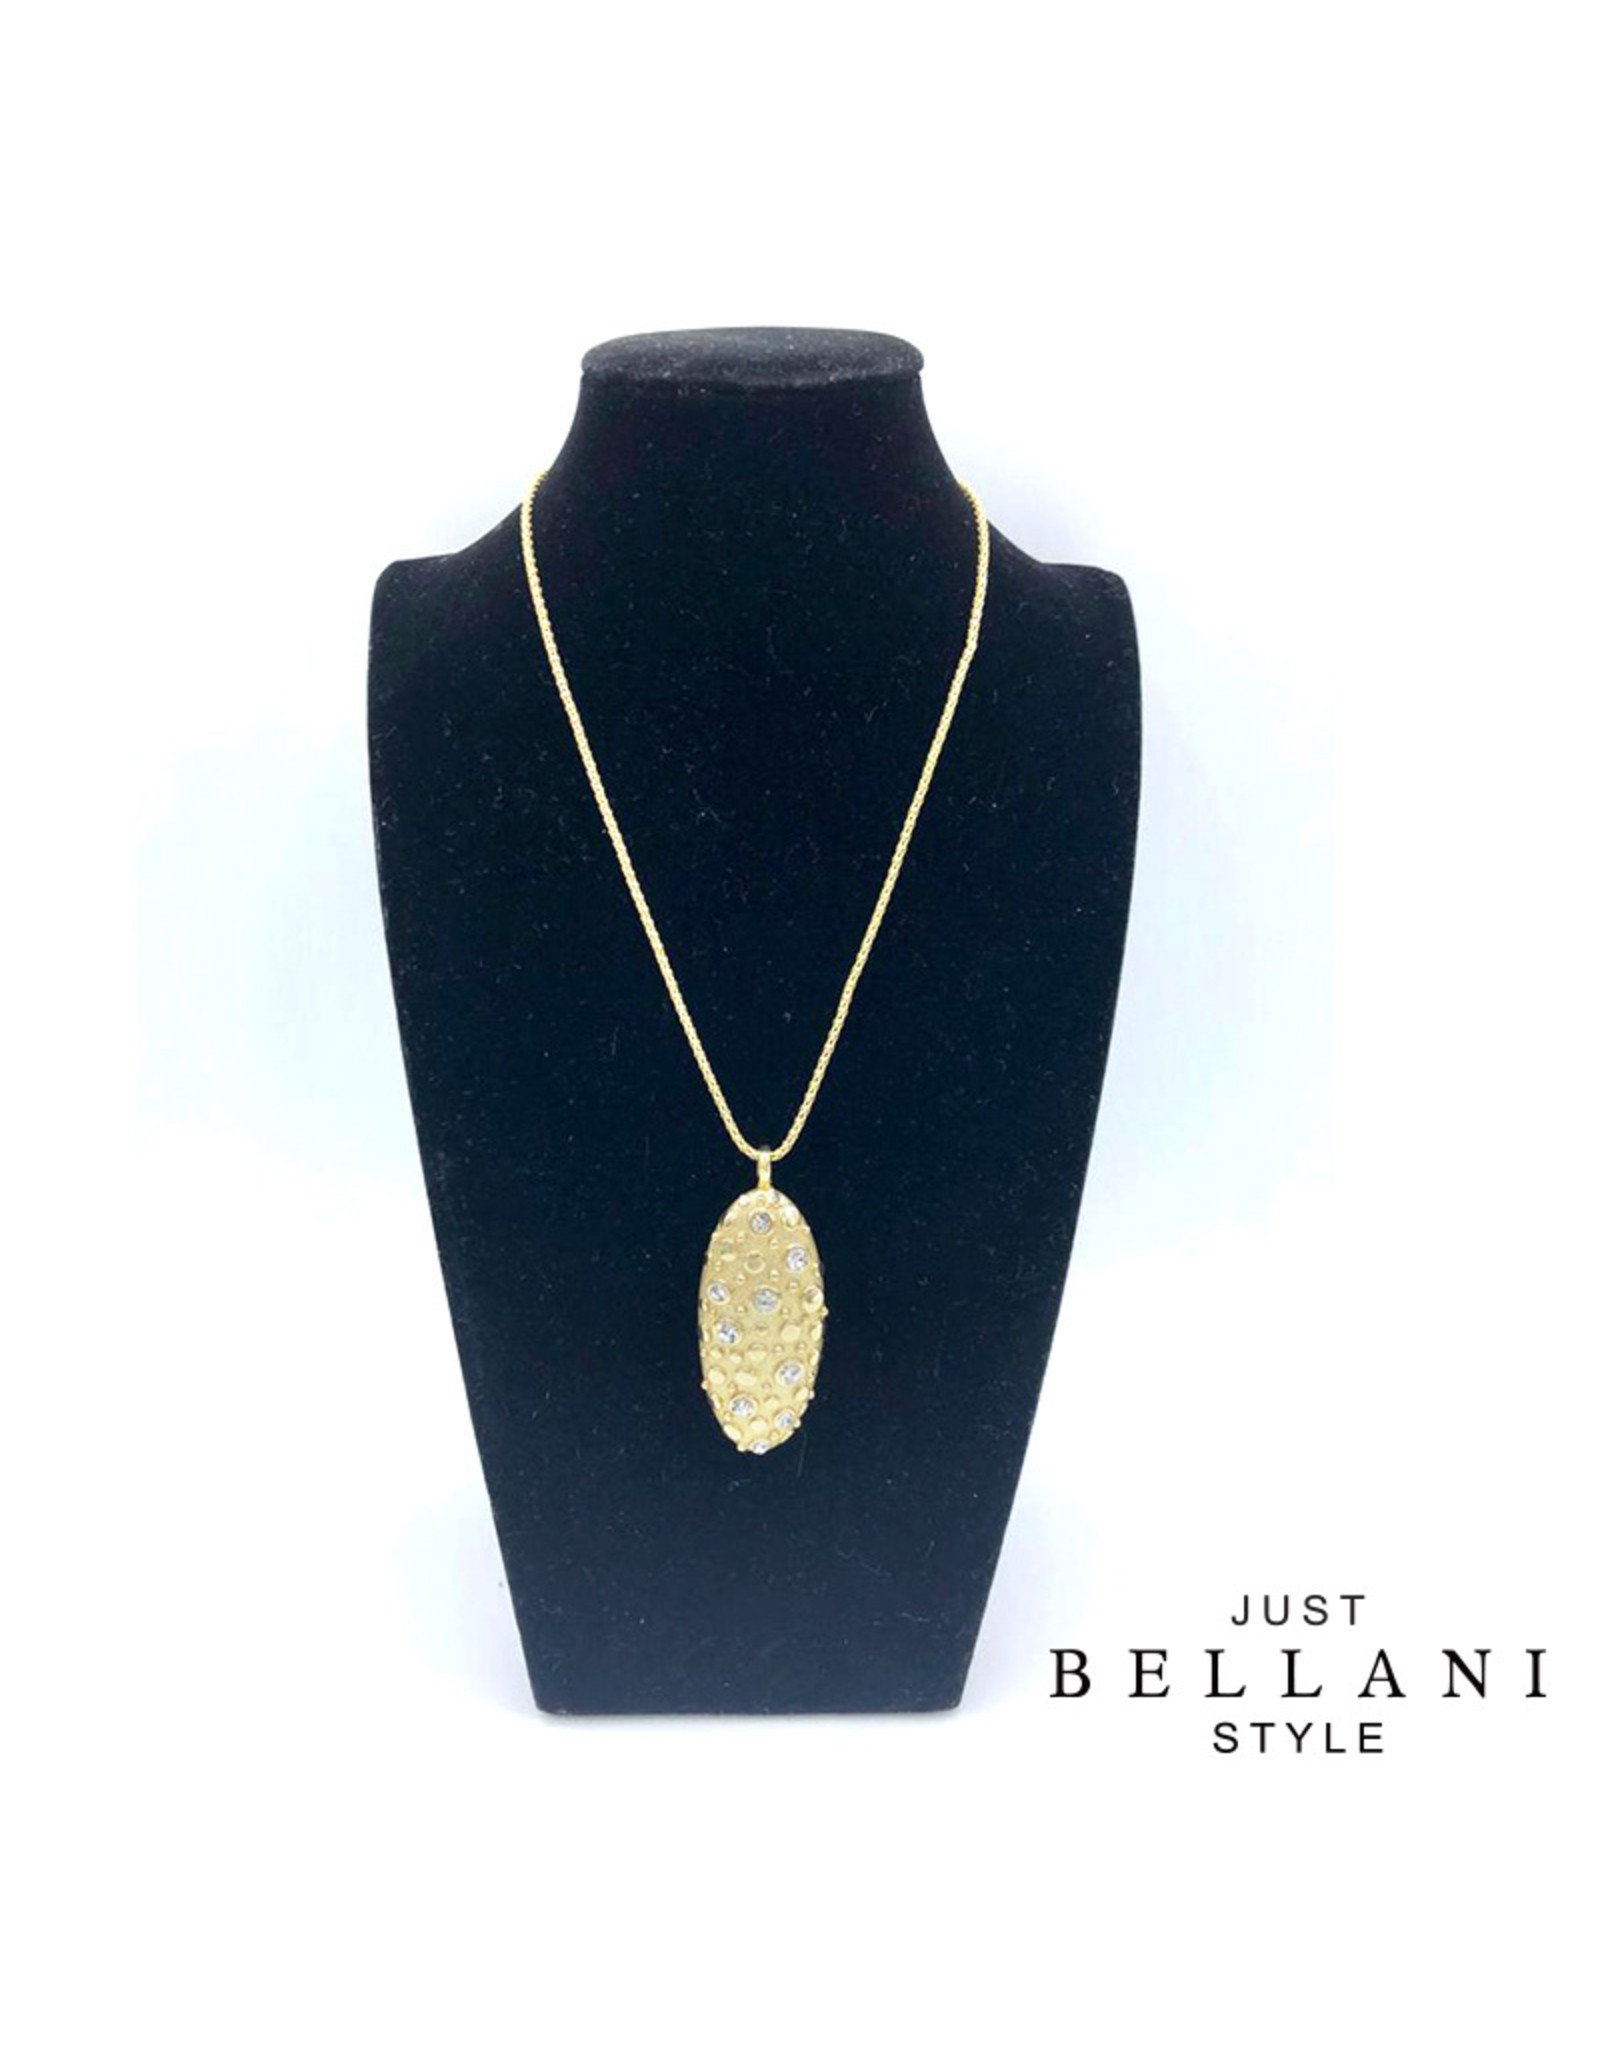 Just Bellani Style Collier White & Gold - Just Bellani Style